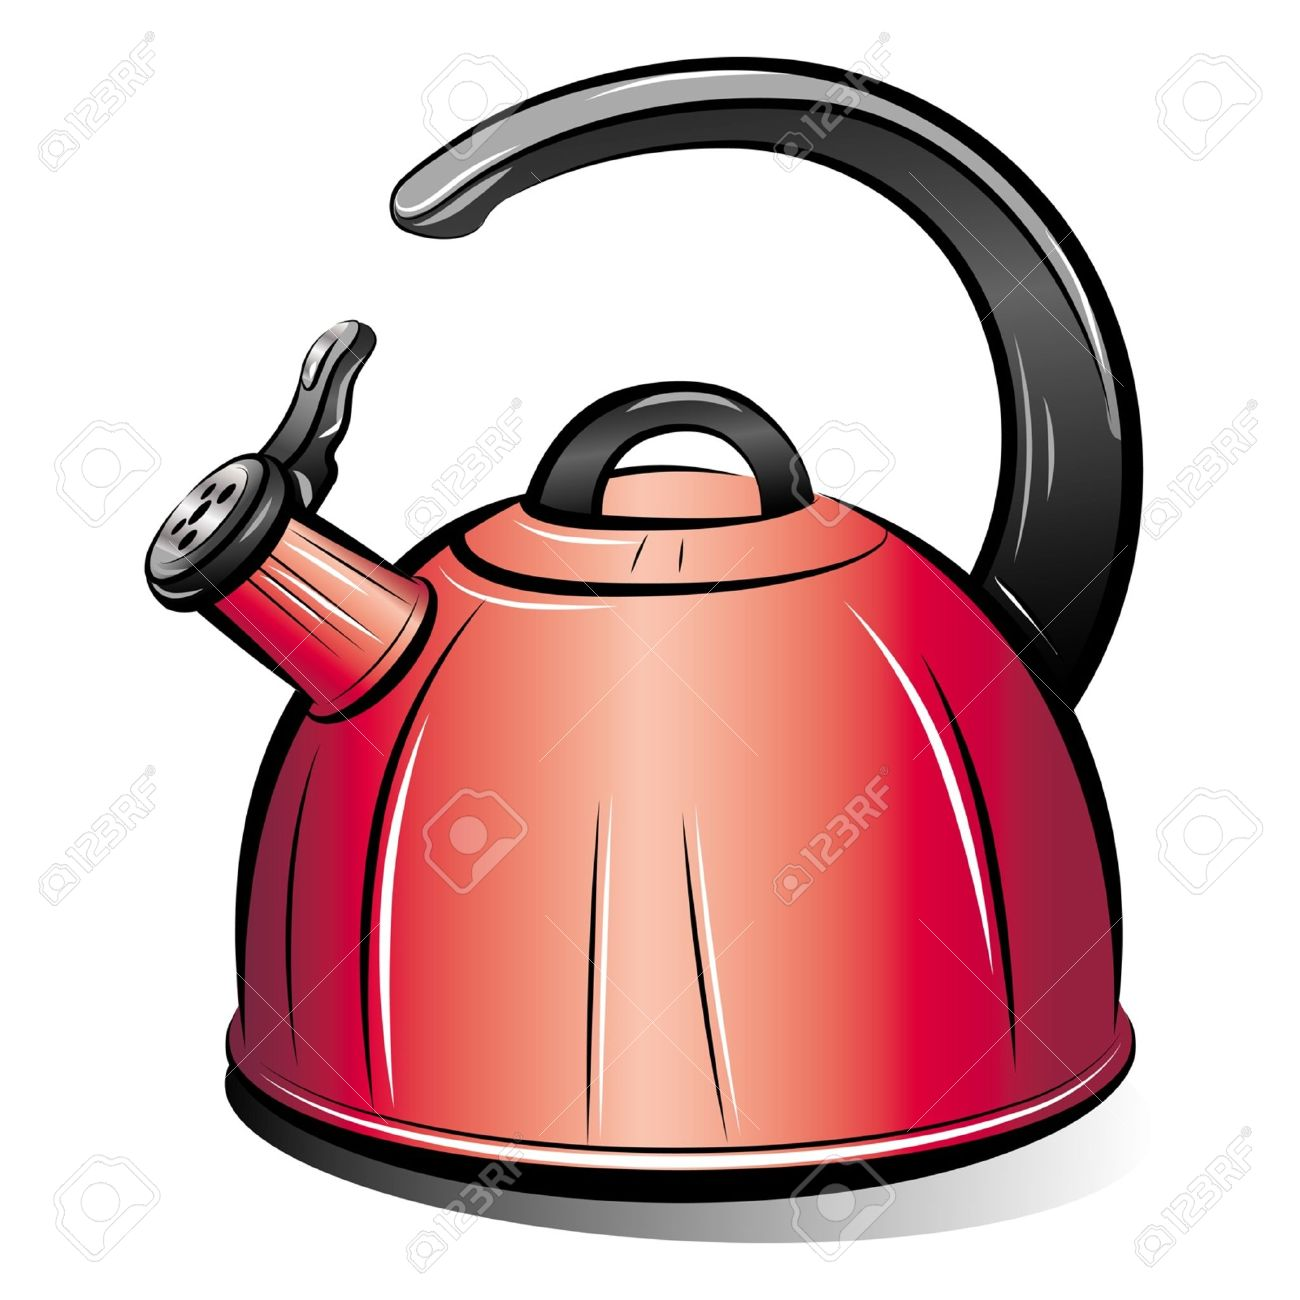 Drawing Of The Red Teapot Kettle On White Background Vector Royalty Free Cliparts Vectors And Stock Illustration Image 10529197